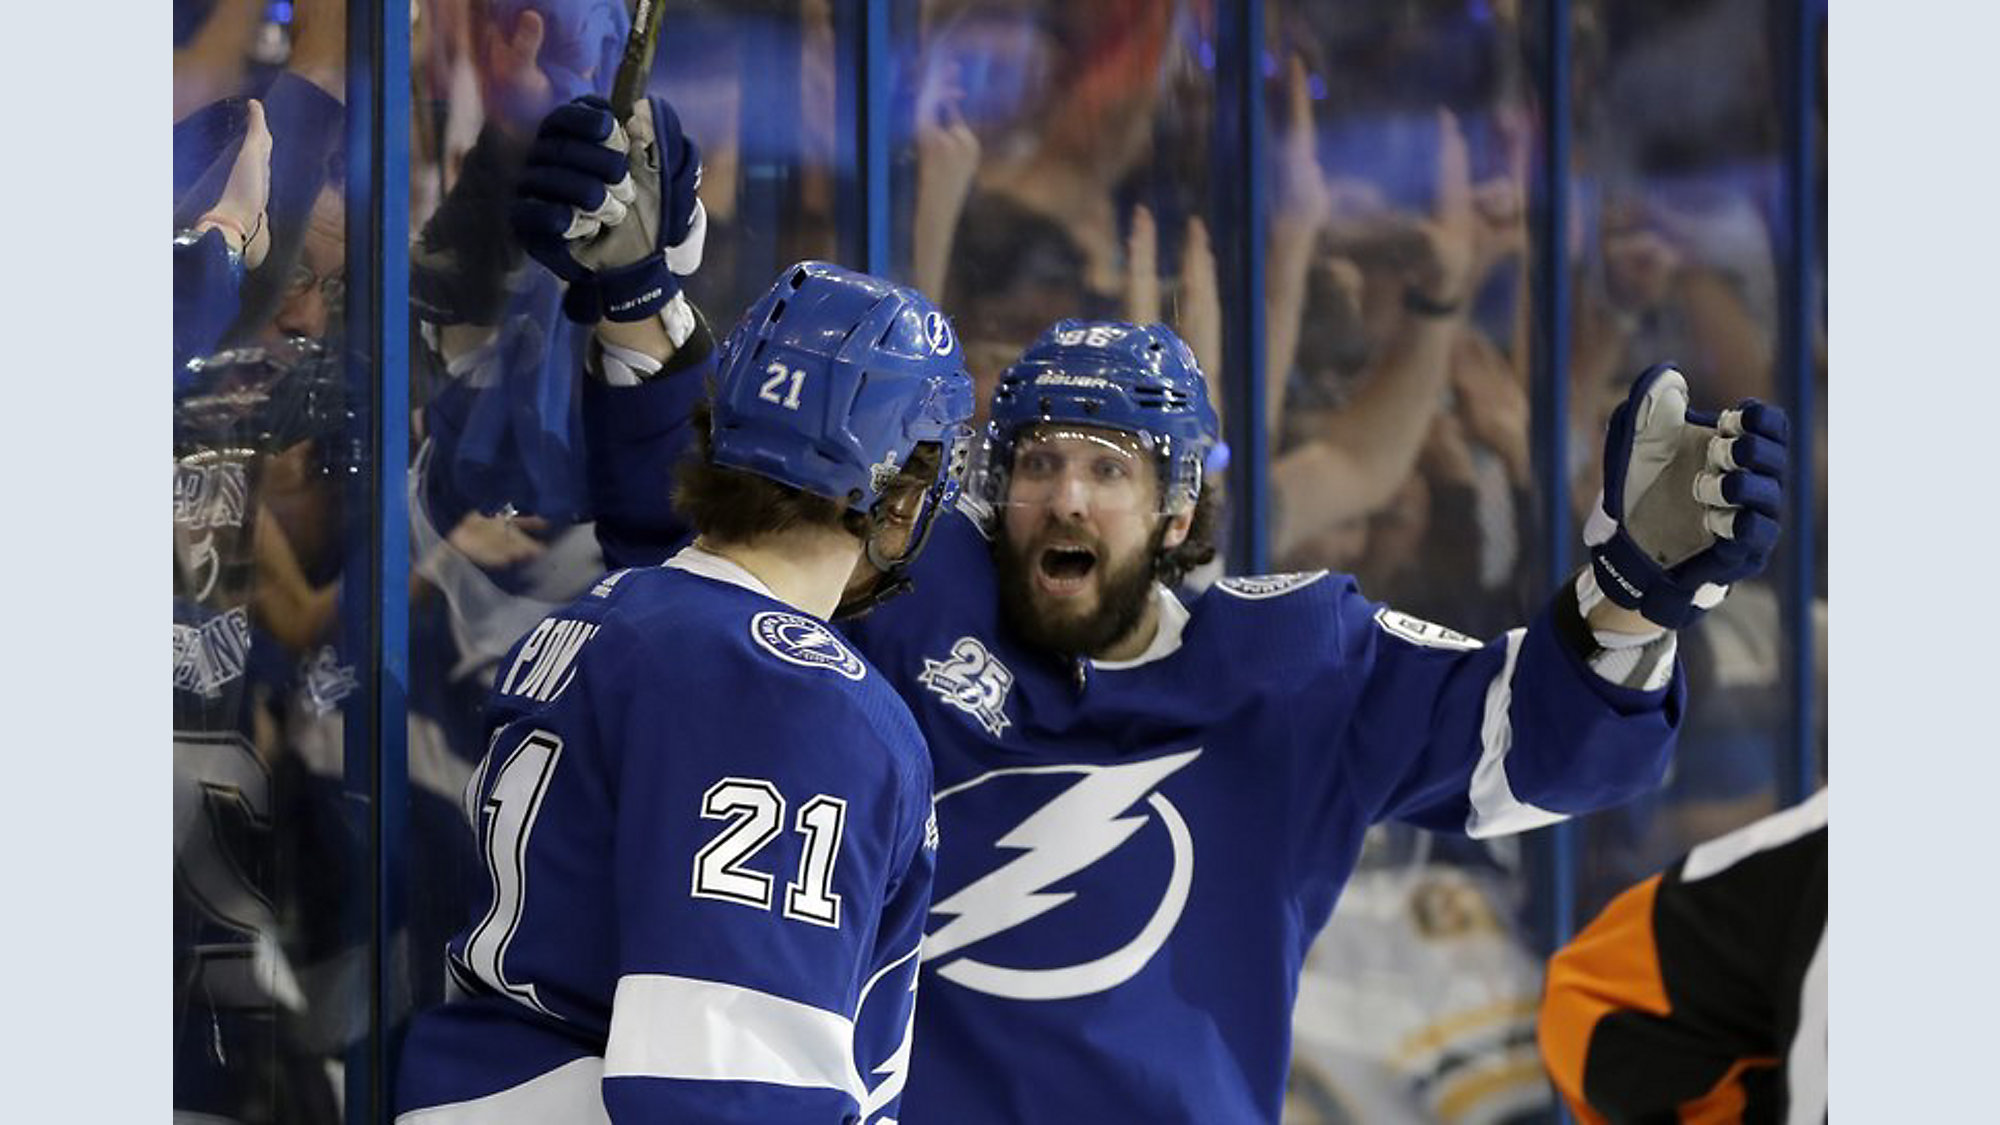 Tampa Bay Lightning Schedule for 2019-20 Released